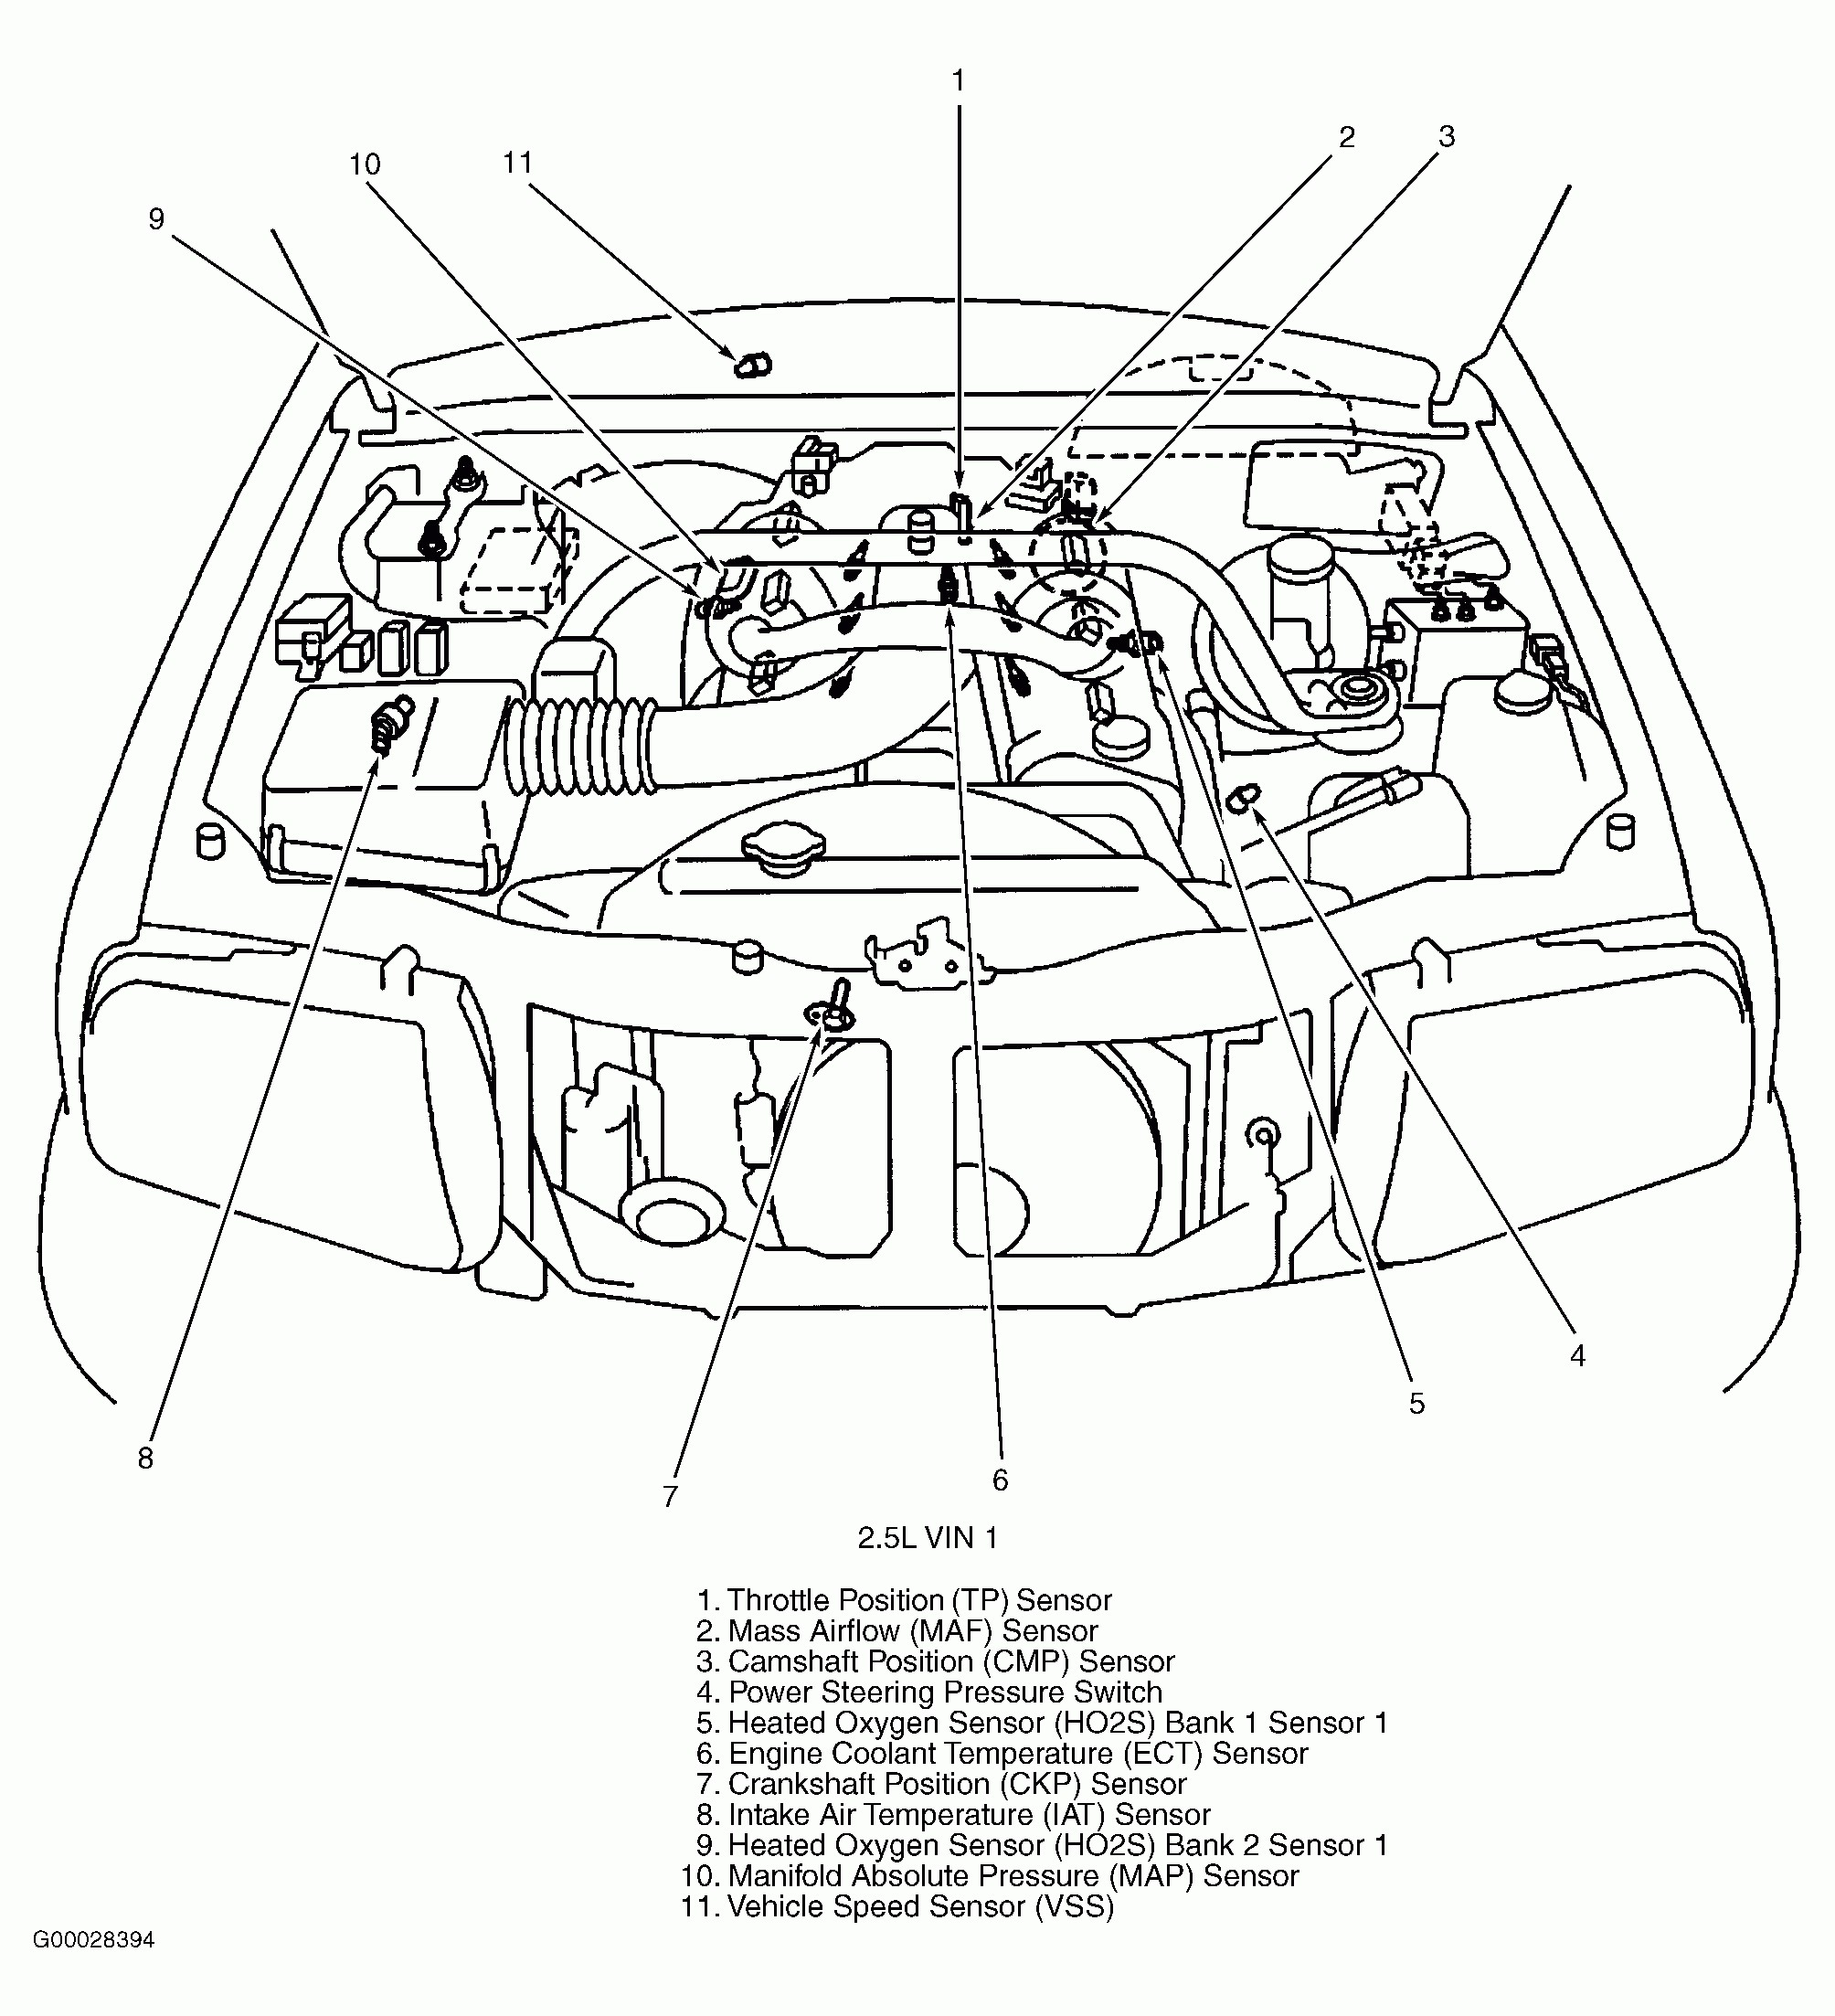 2002 Chevy Tracker Engine Diagram Take A Look About 1998 Chevy Tracker with Extraordinary Of 2002 Chevy Tracker Engine Diagram